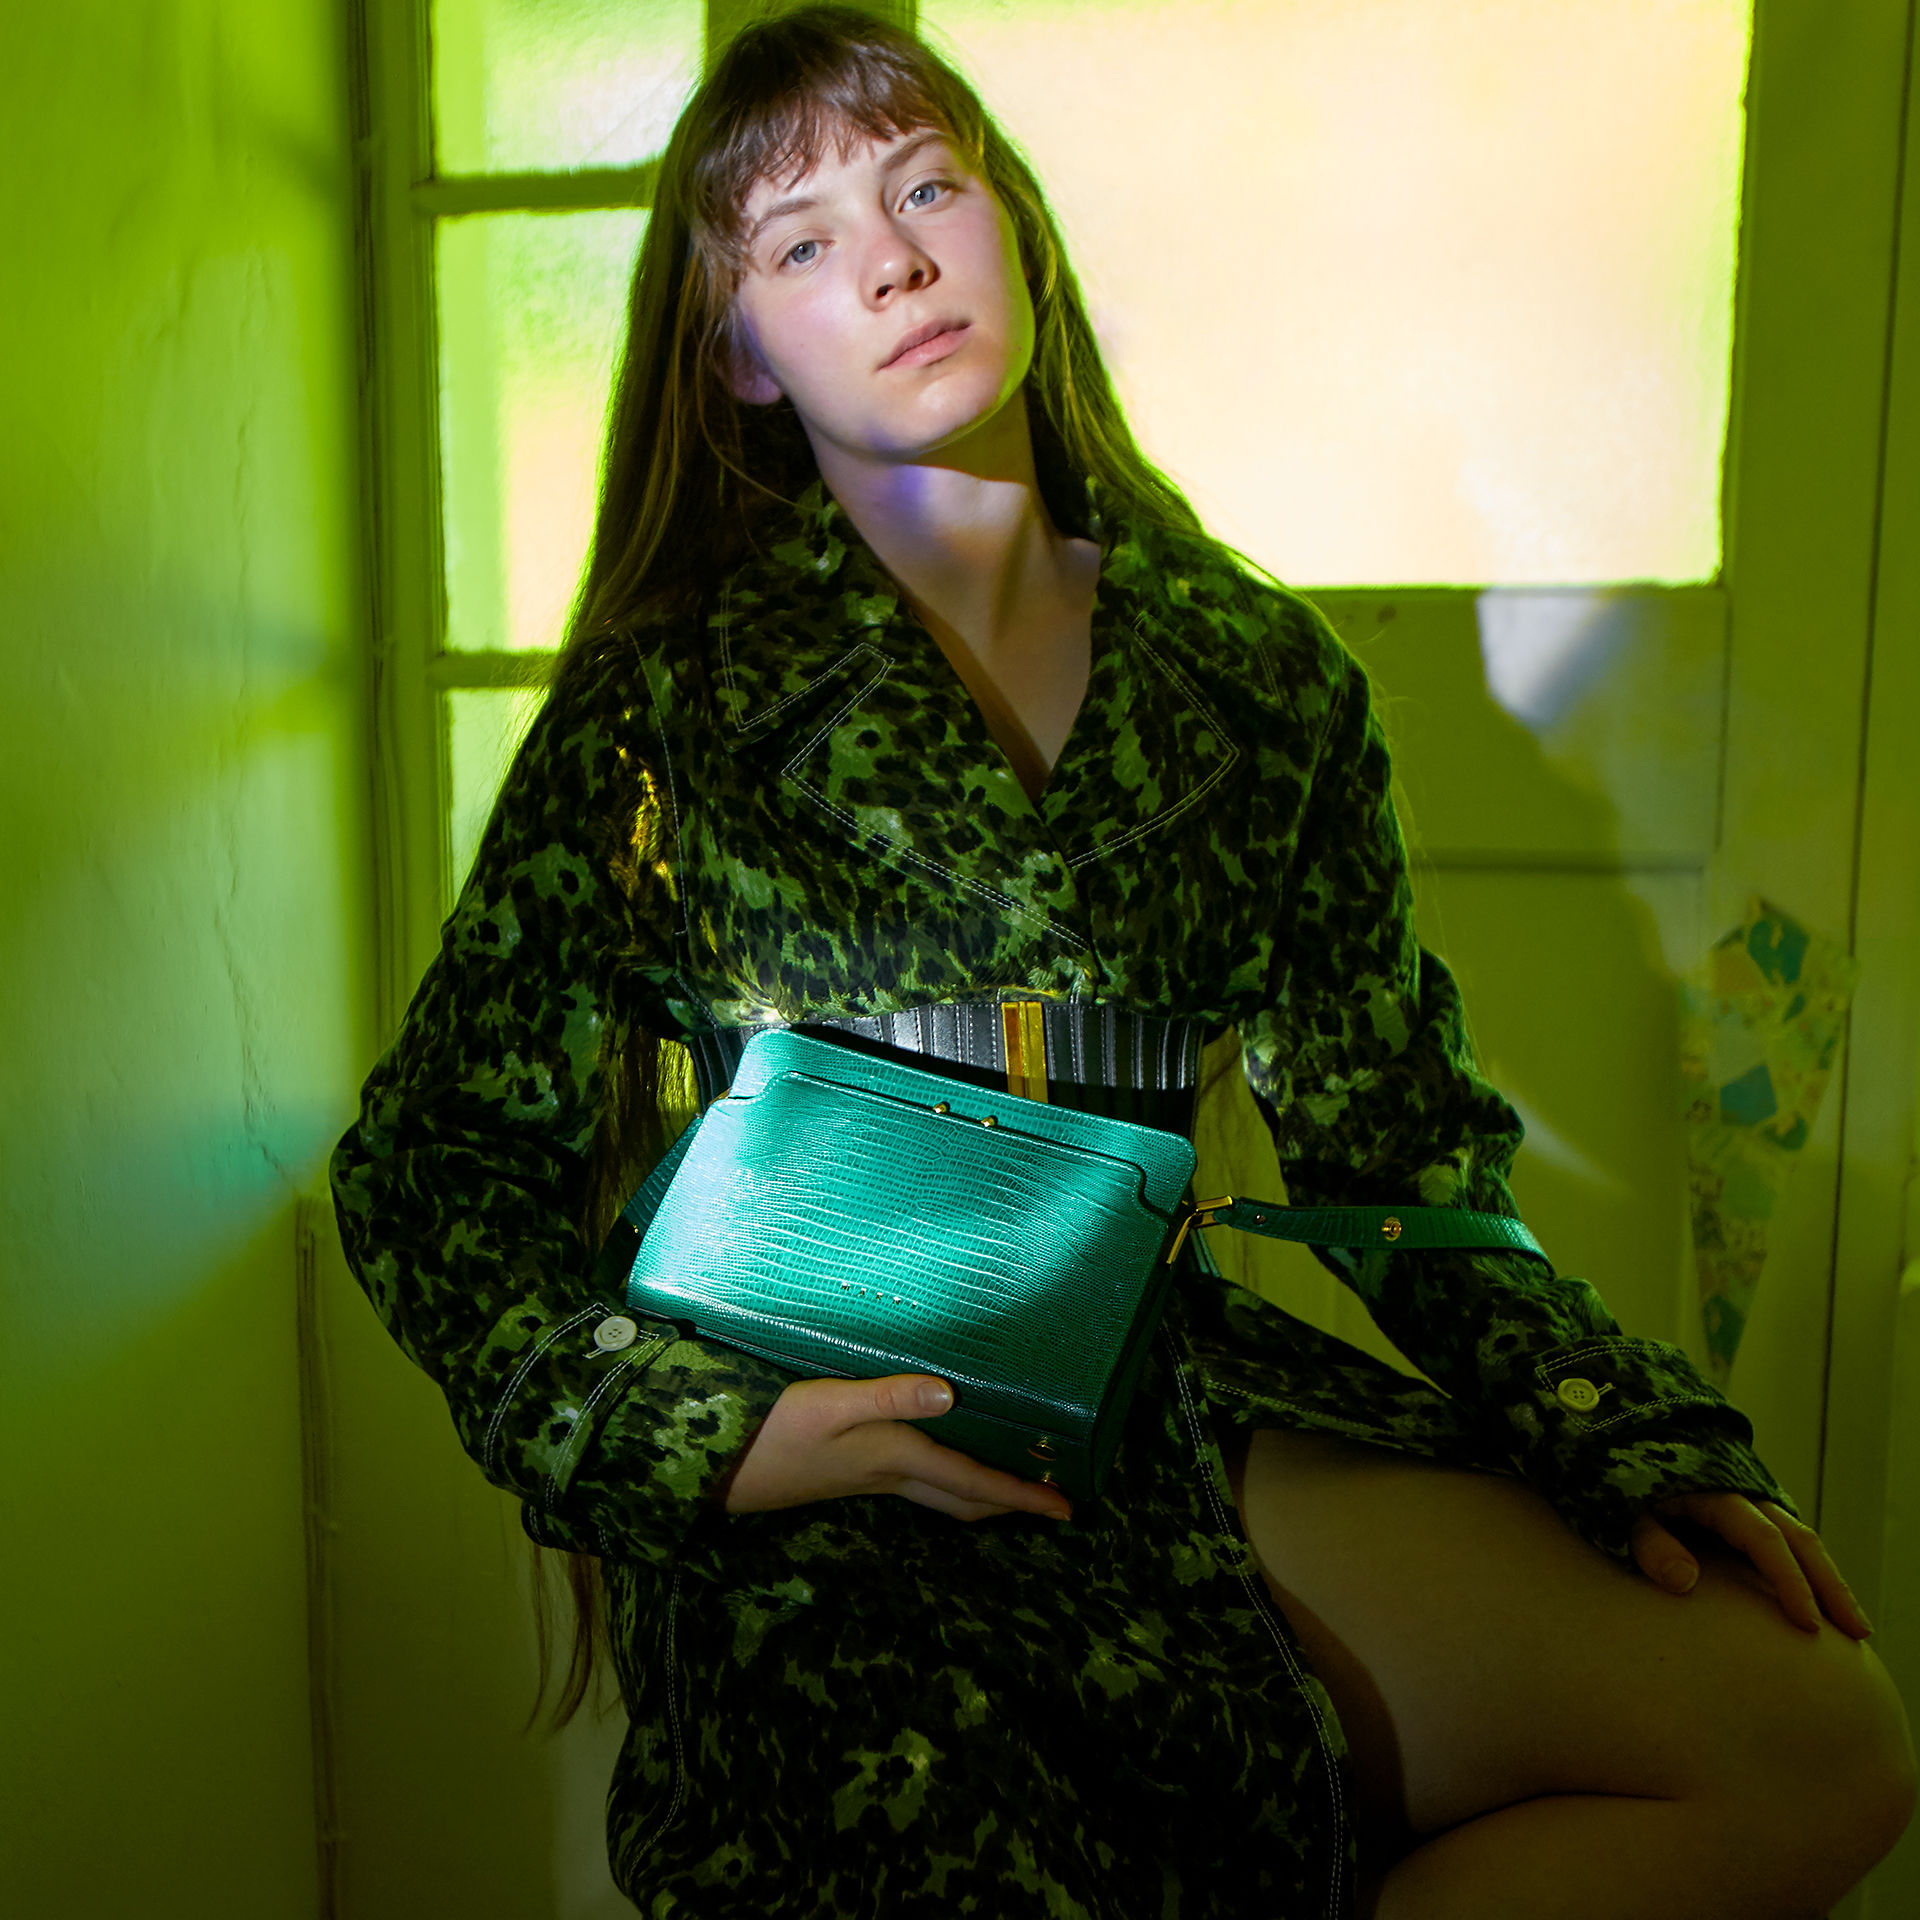 Model is wearing the lizard-printed jade green Trunk Reverse bag